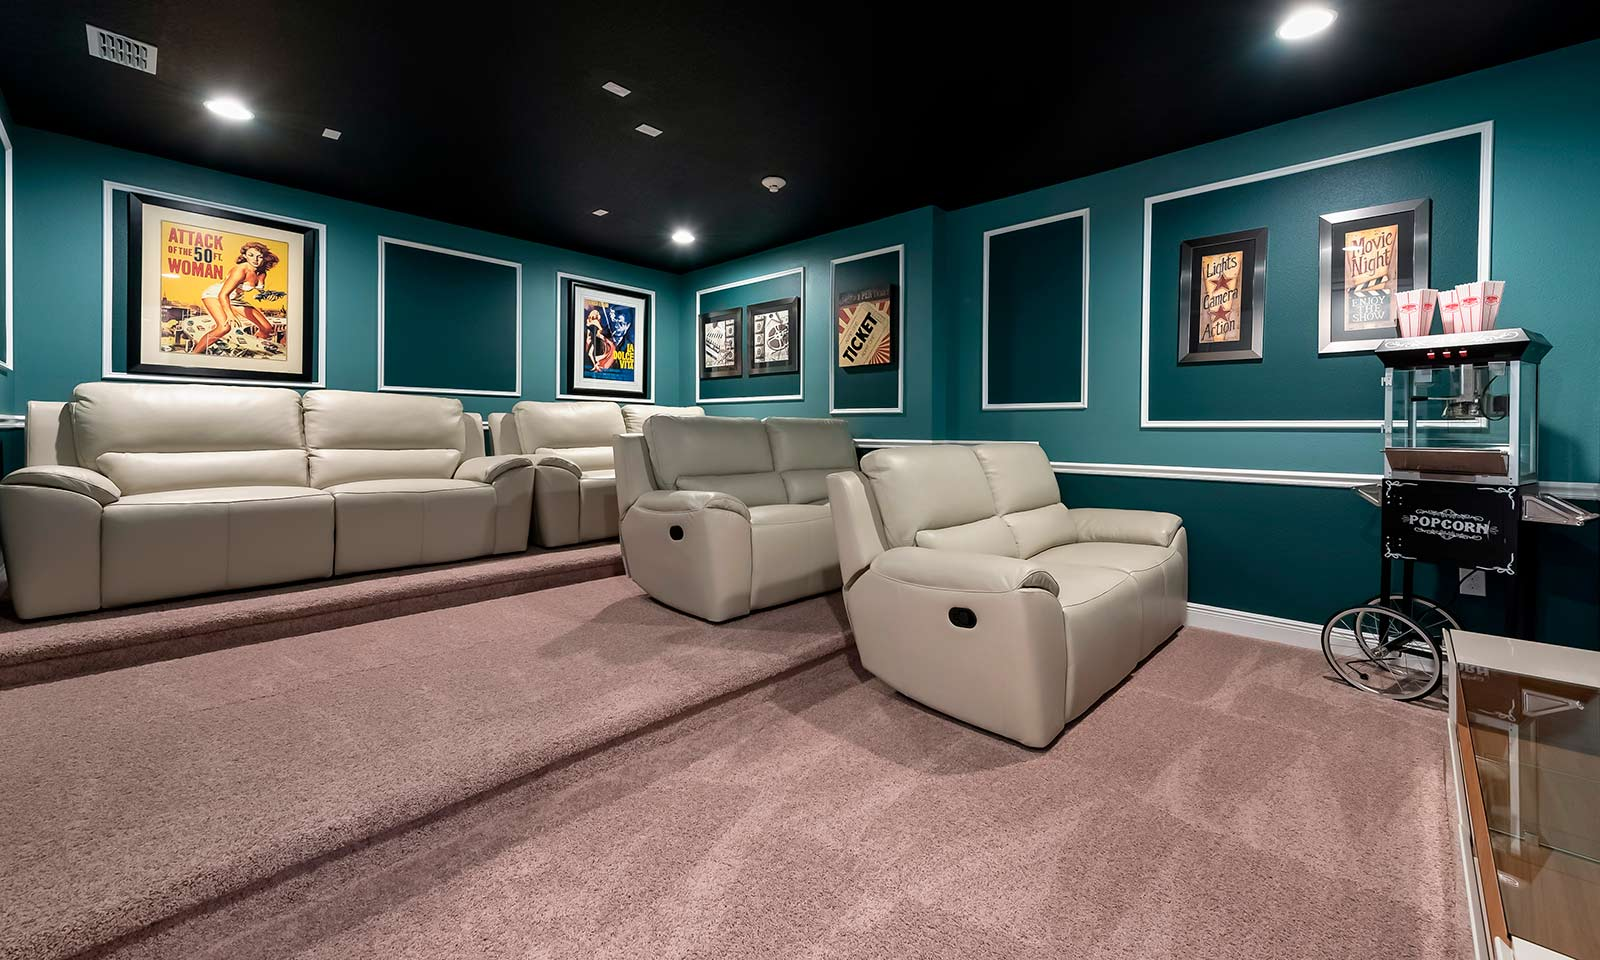 [amenities:theater-room:2] Theater Room